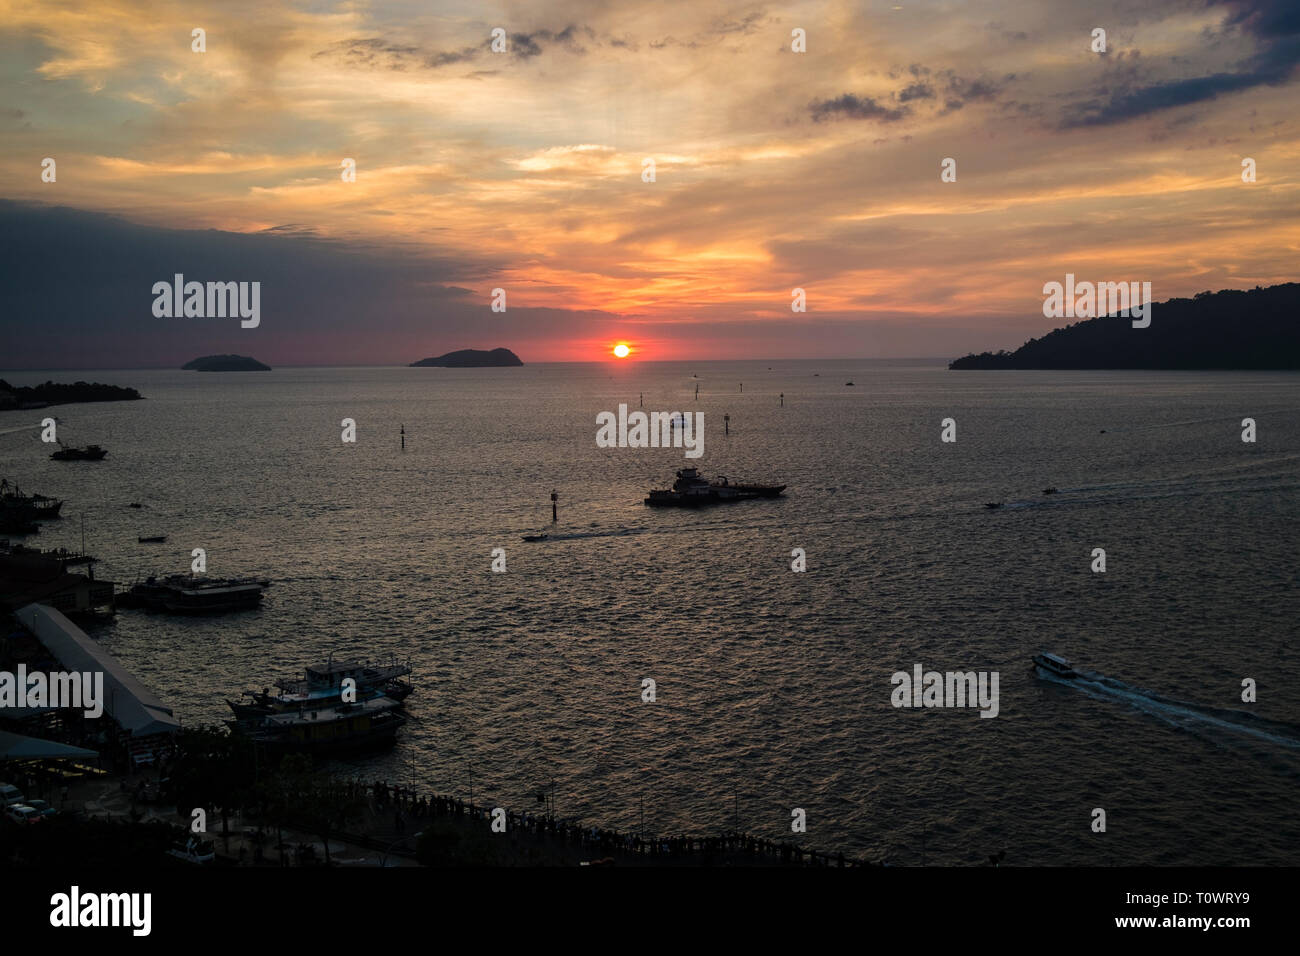 A stunning, beautiful, orange sunset with sun ball over the South China Sea in Kota Kinabalu, Sabah, Borneo, Malaysia. - Stock Image